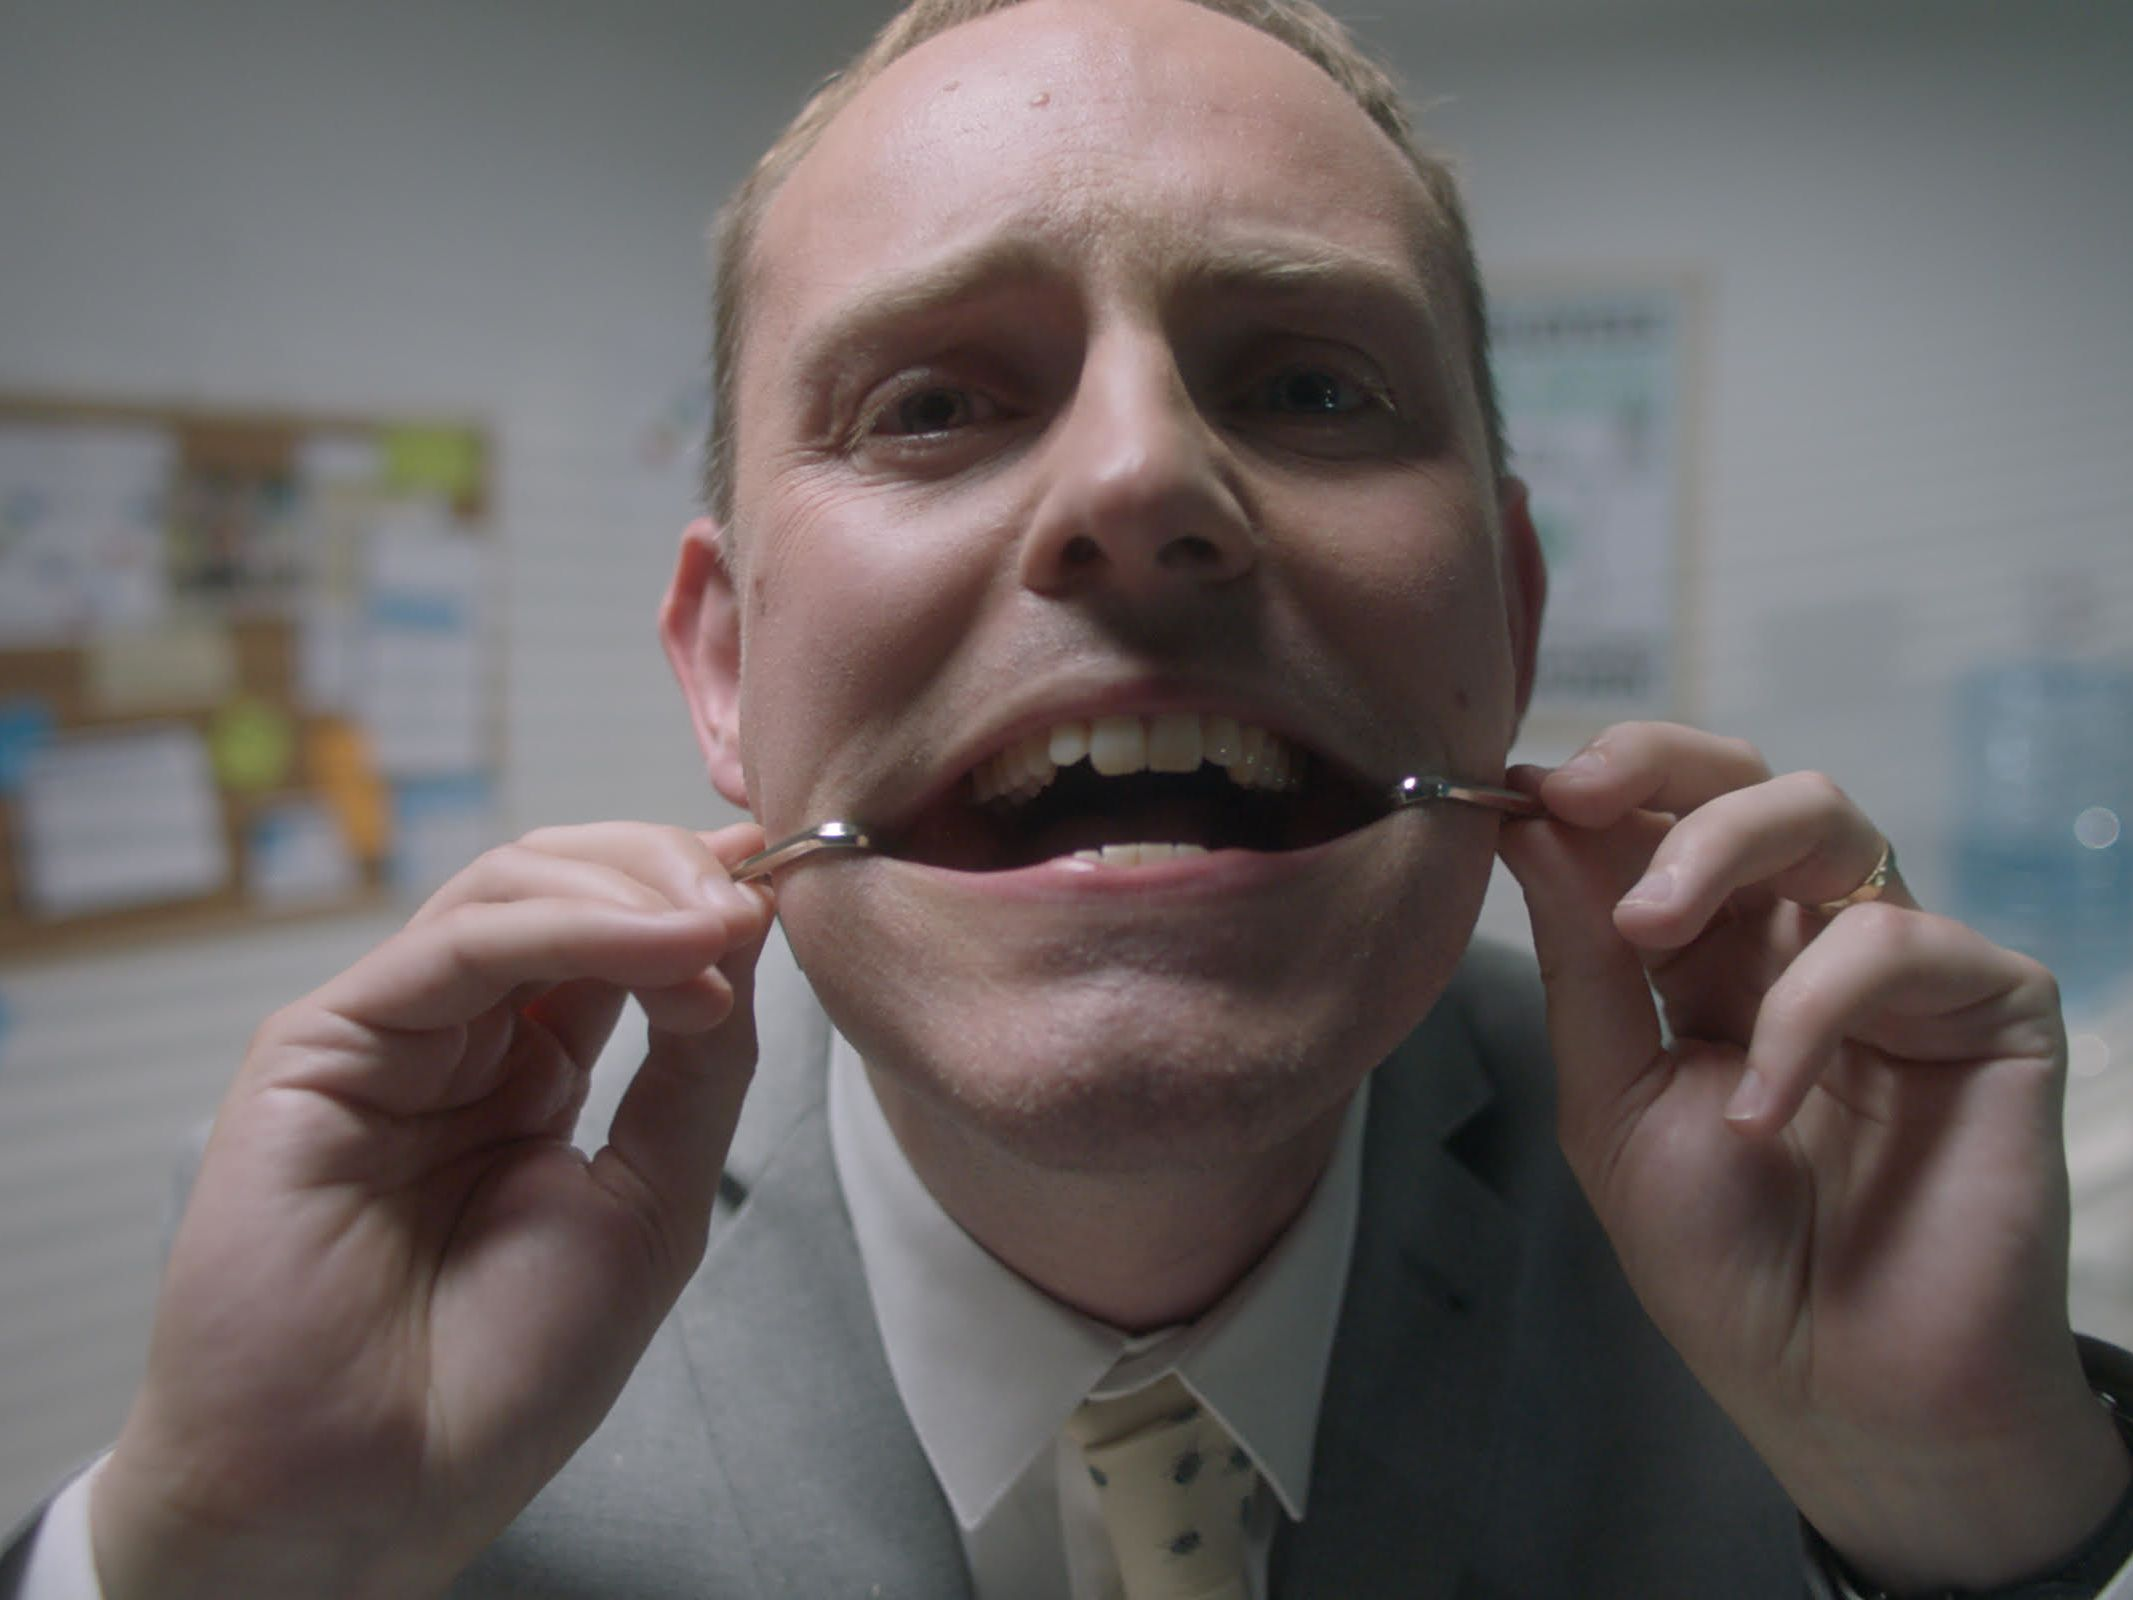 Close up of a man pressing a wire against his teeth